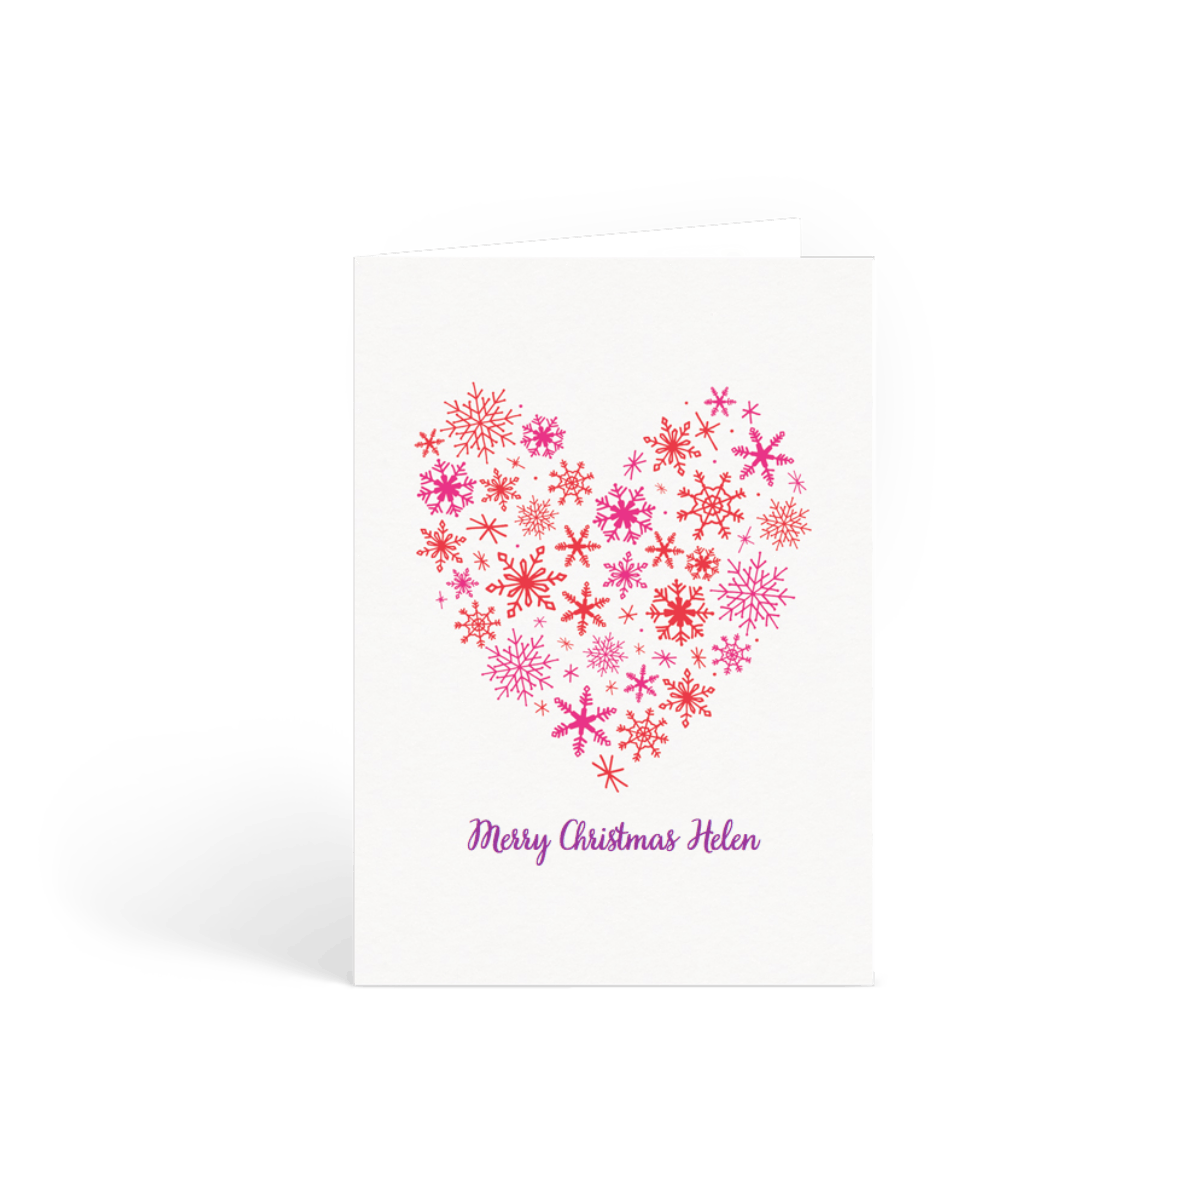 Https%3a%2f%2fwww.papier.com%2fproduct image%2f2194%2f2%2fsnowflake heart 617 front 1477935890.png?ixlib=rb 1.1